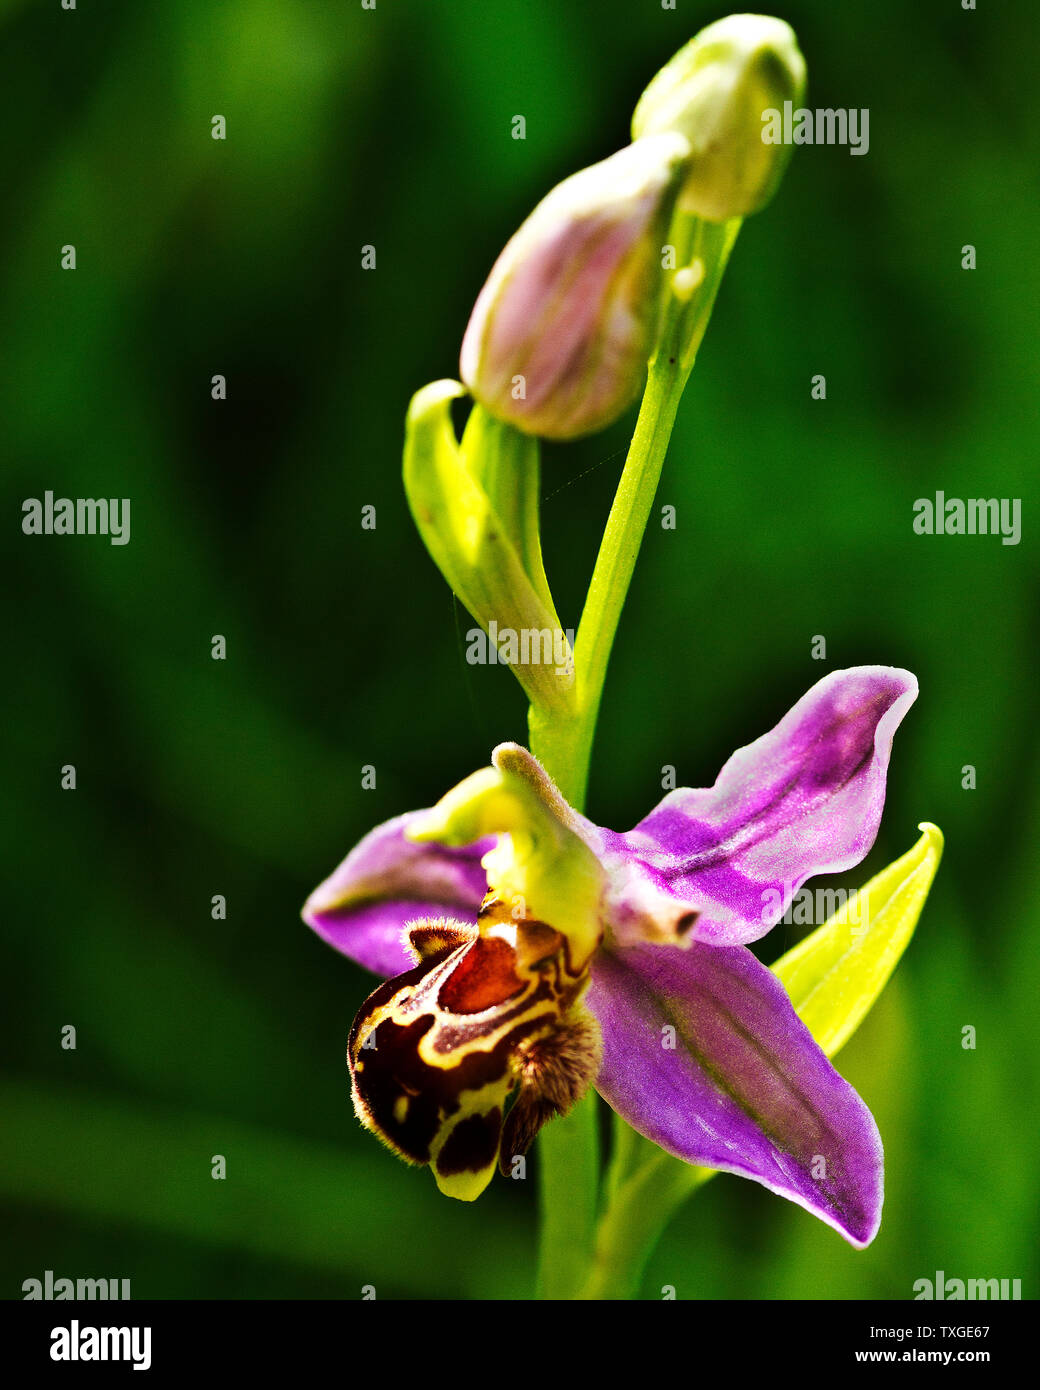 The flower of the Bee Orchid is an example of the Orchid family specialization of mimicry of their infloresence to attract their pollinating insects b - Stock Image